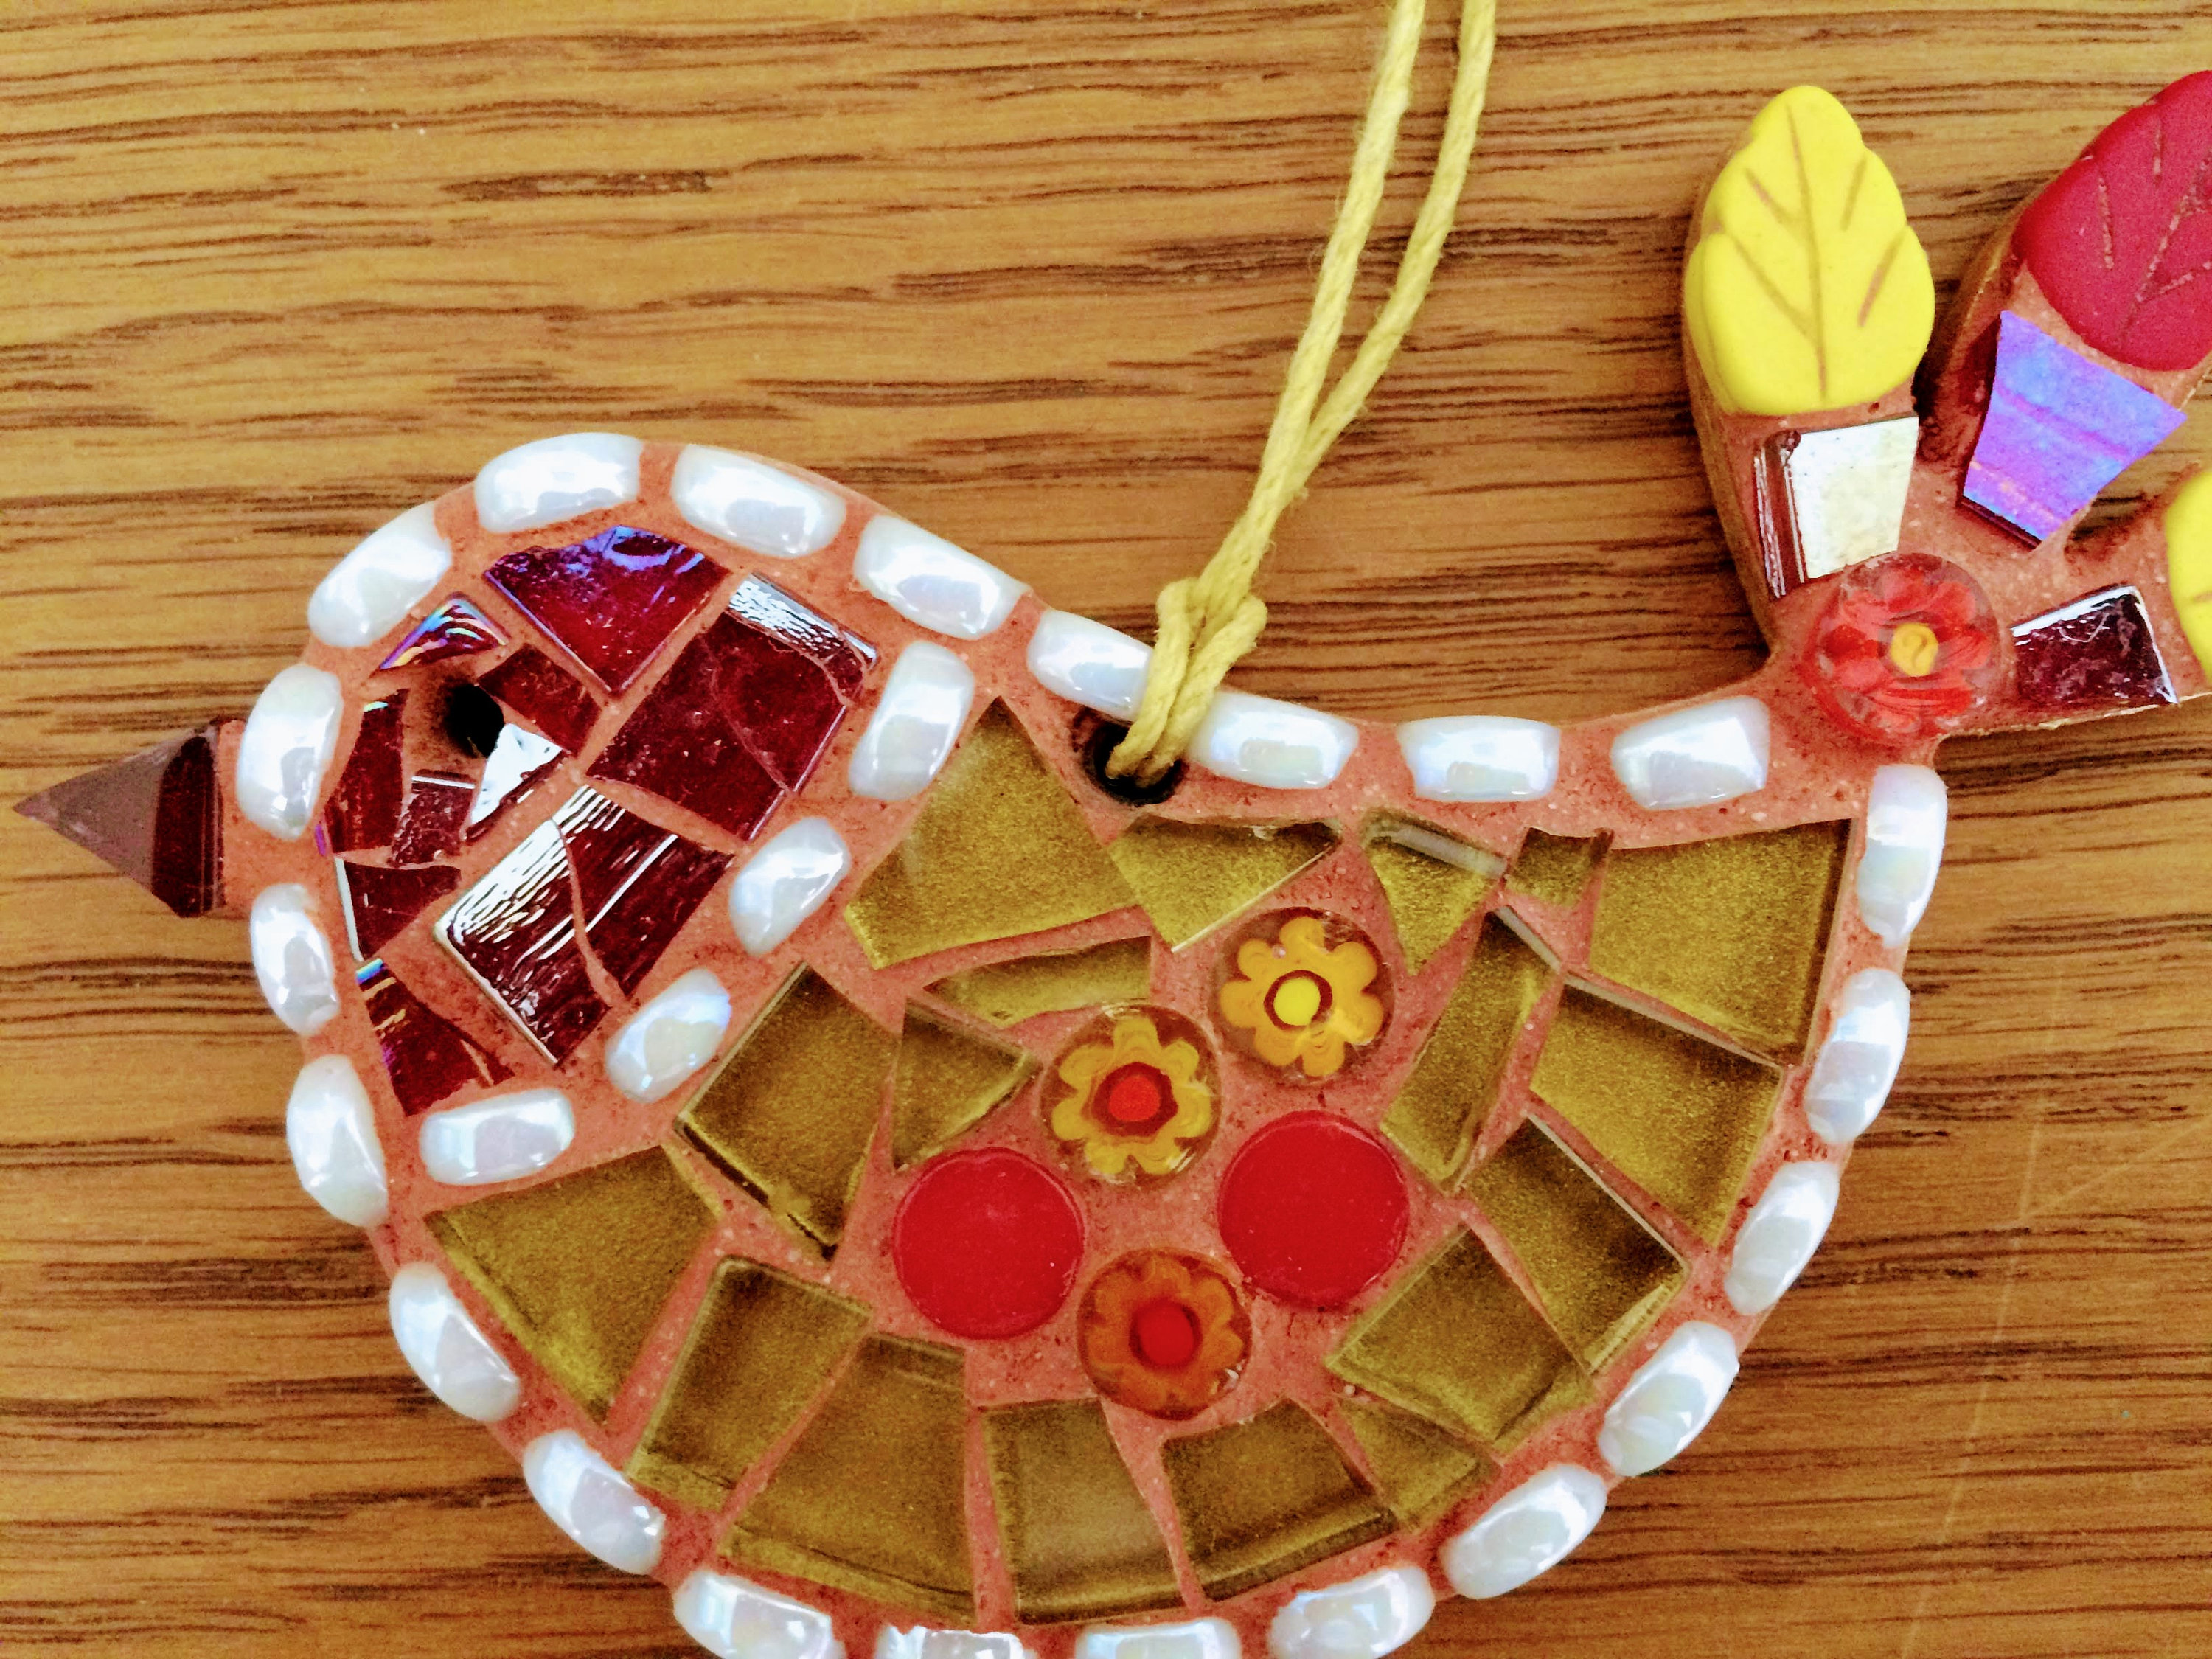 Handmade Glass Mosaic Red And Gold Hanging Bird Ornament Unique Gift Idea Bird Wall Art Home Decor Gift For Her By Shelaghjanemosaics